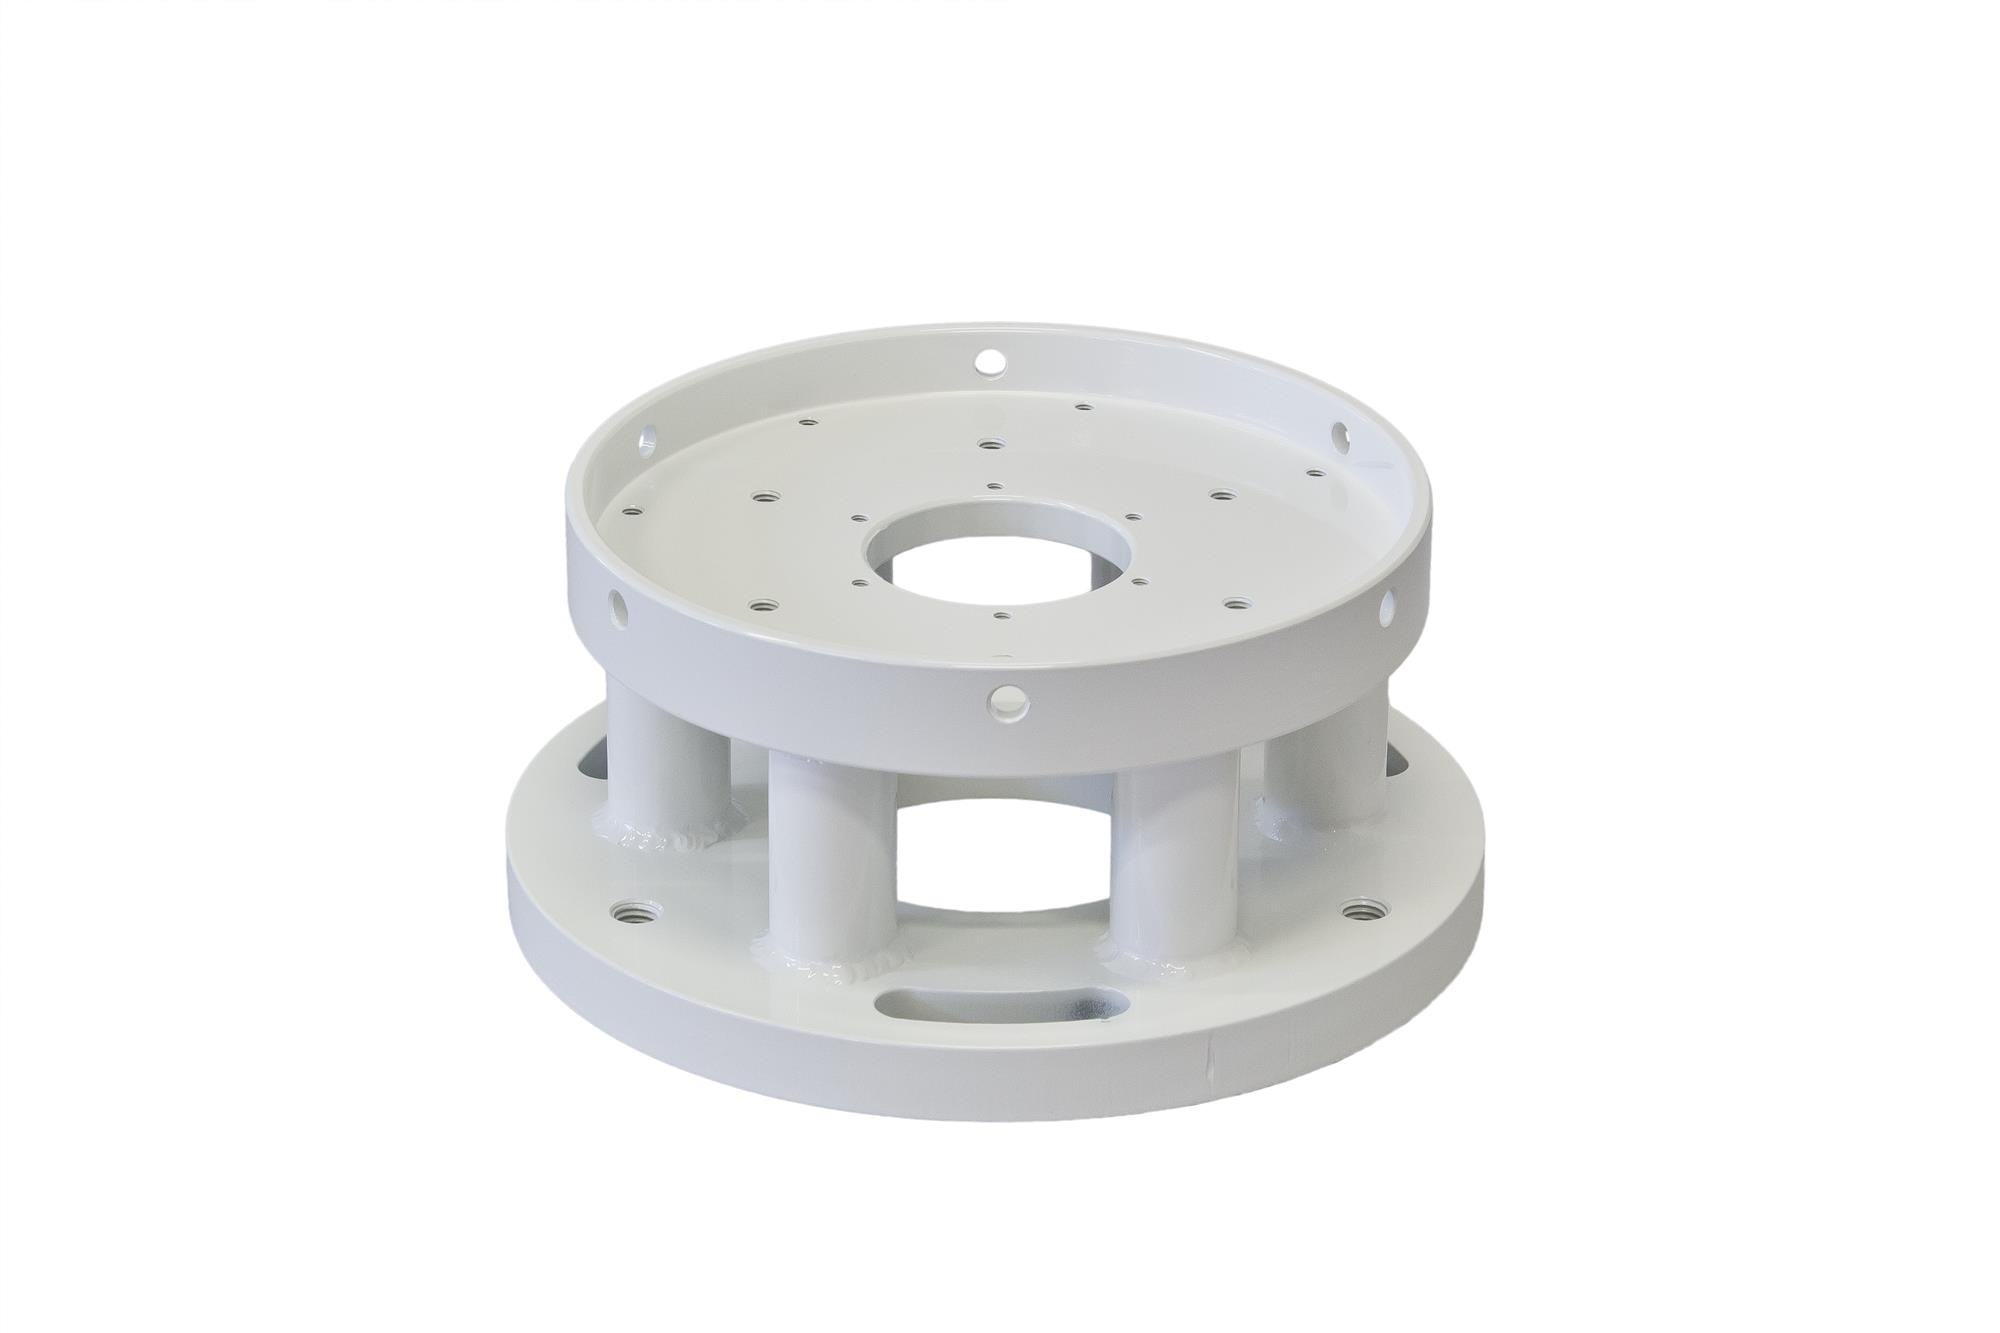 Baader Medium Pillar (BMP) Levelling Flange for GM 2000 and AP 1100/900 GTO Mounts